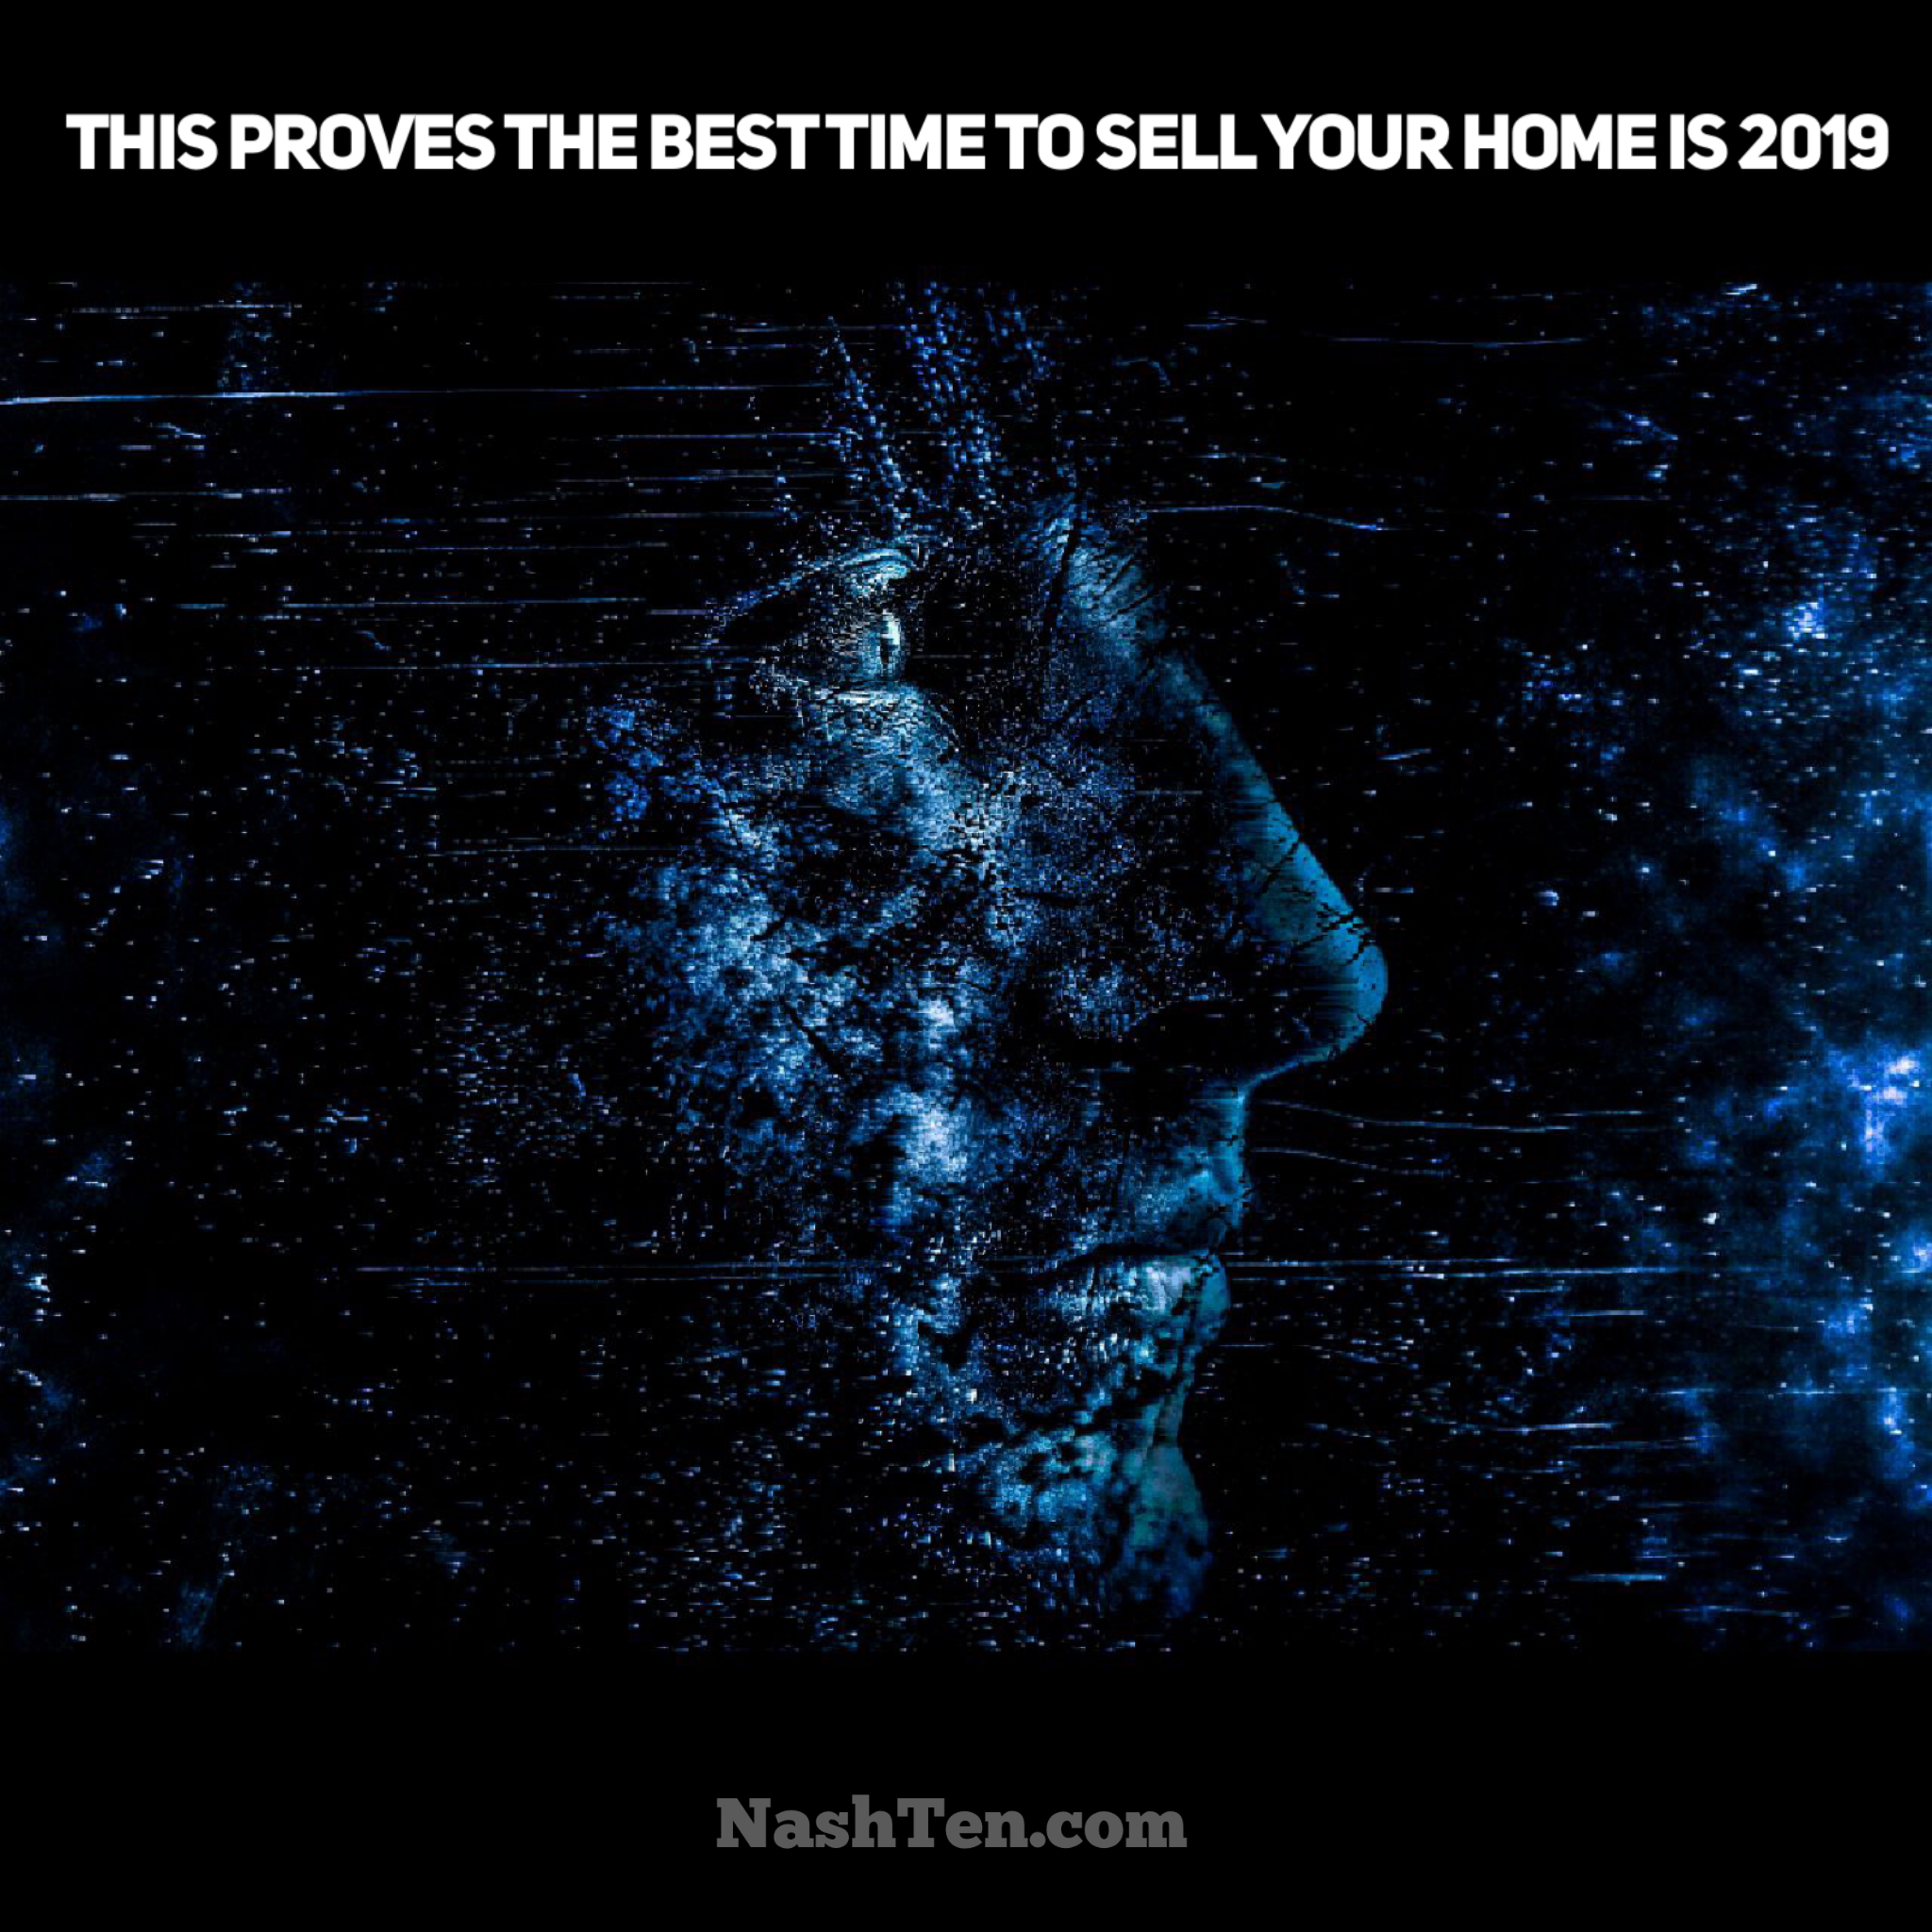 This proves the best time to sell in 2019